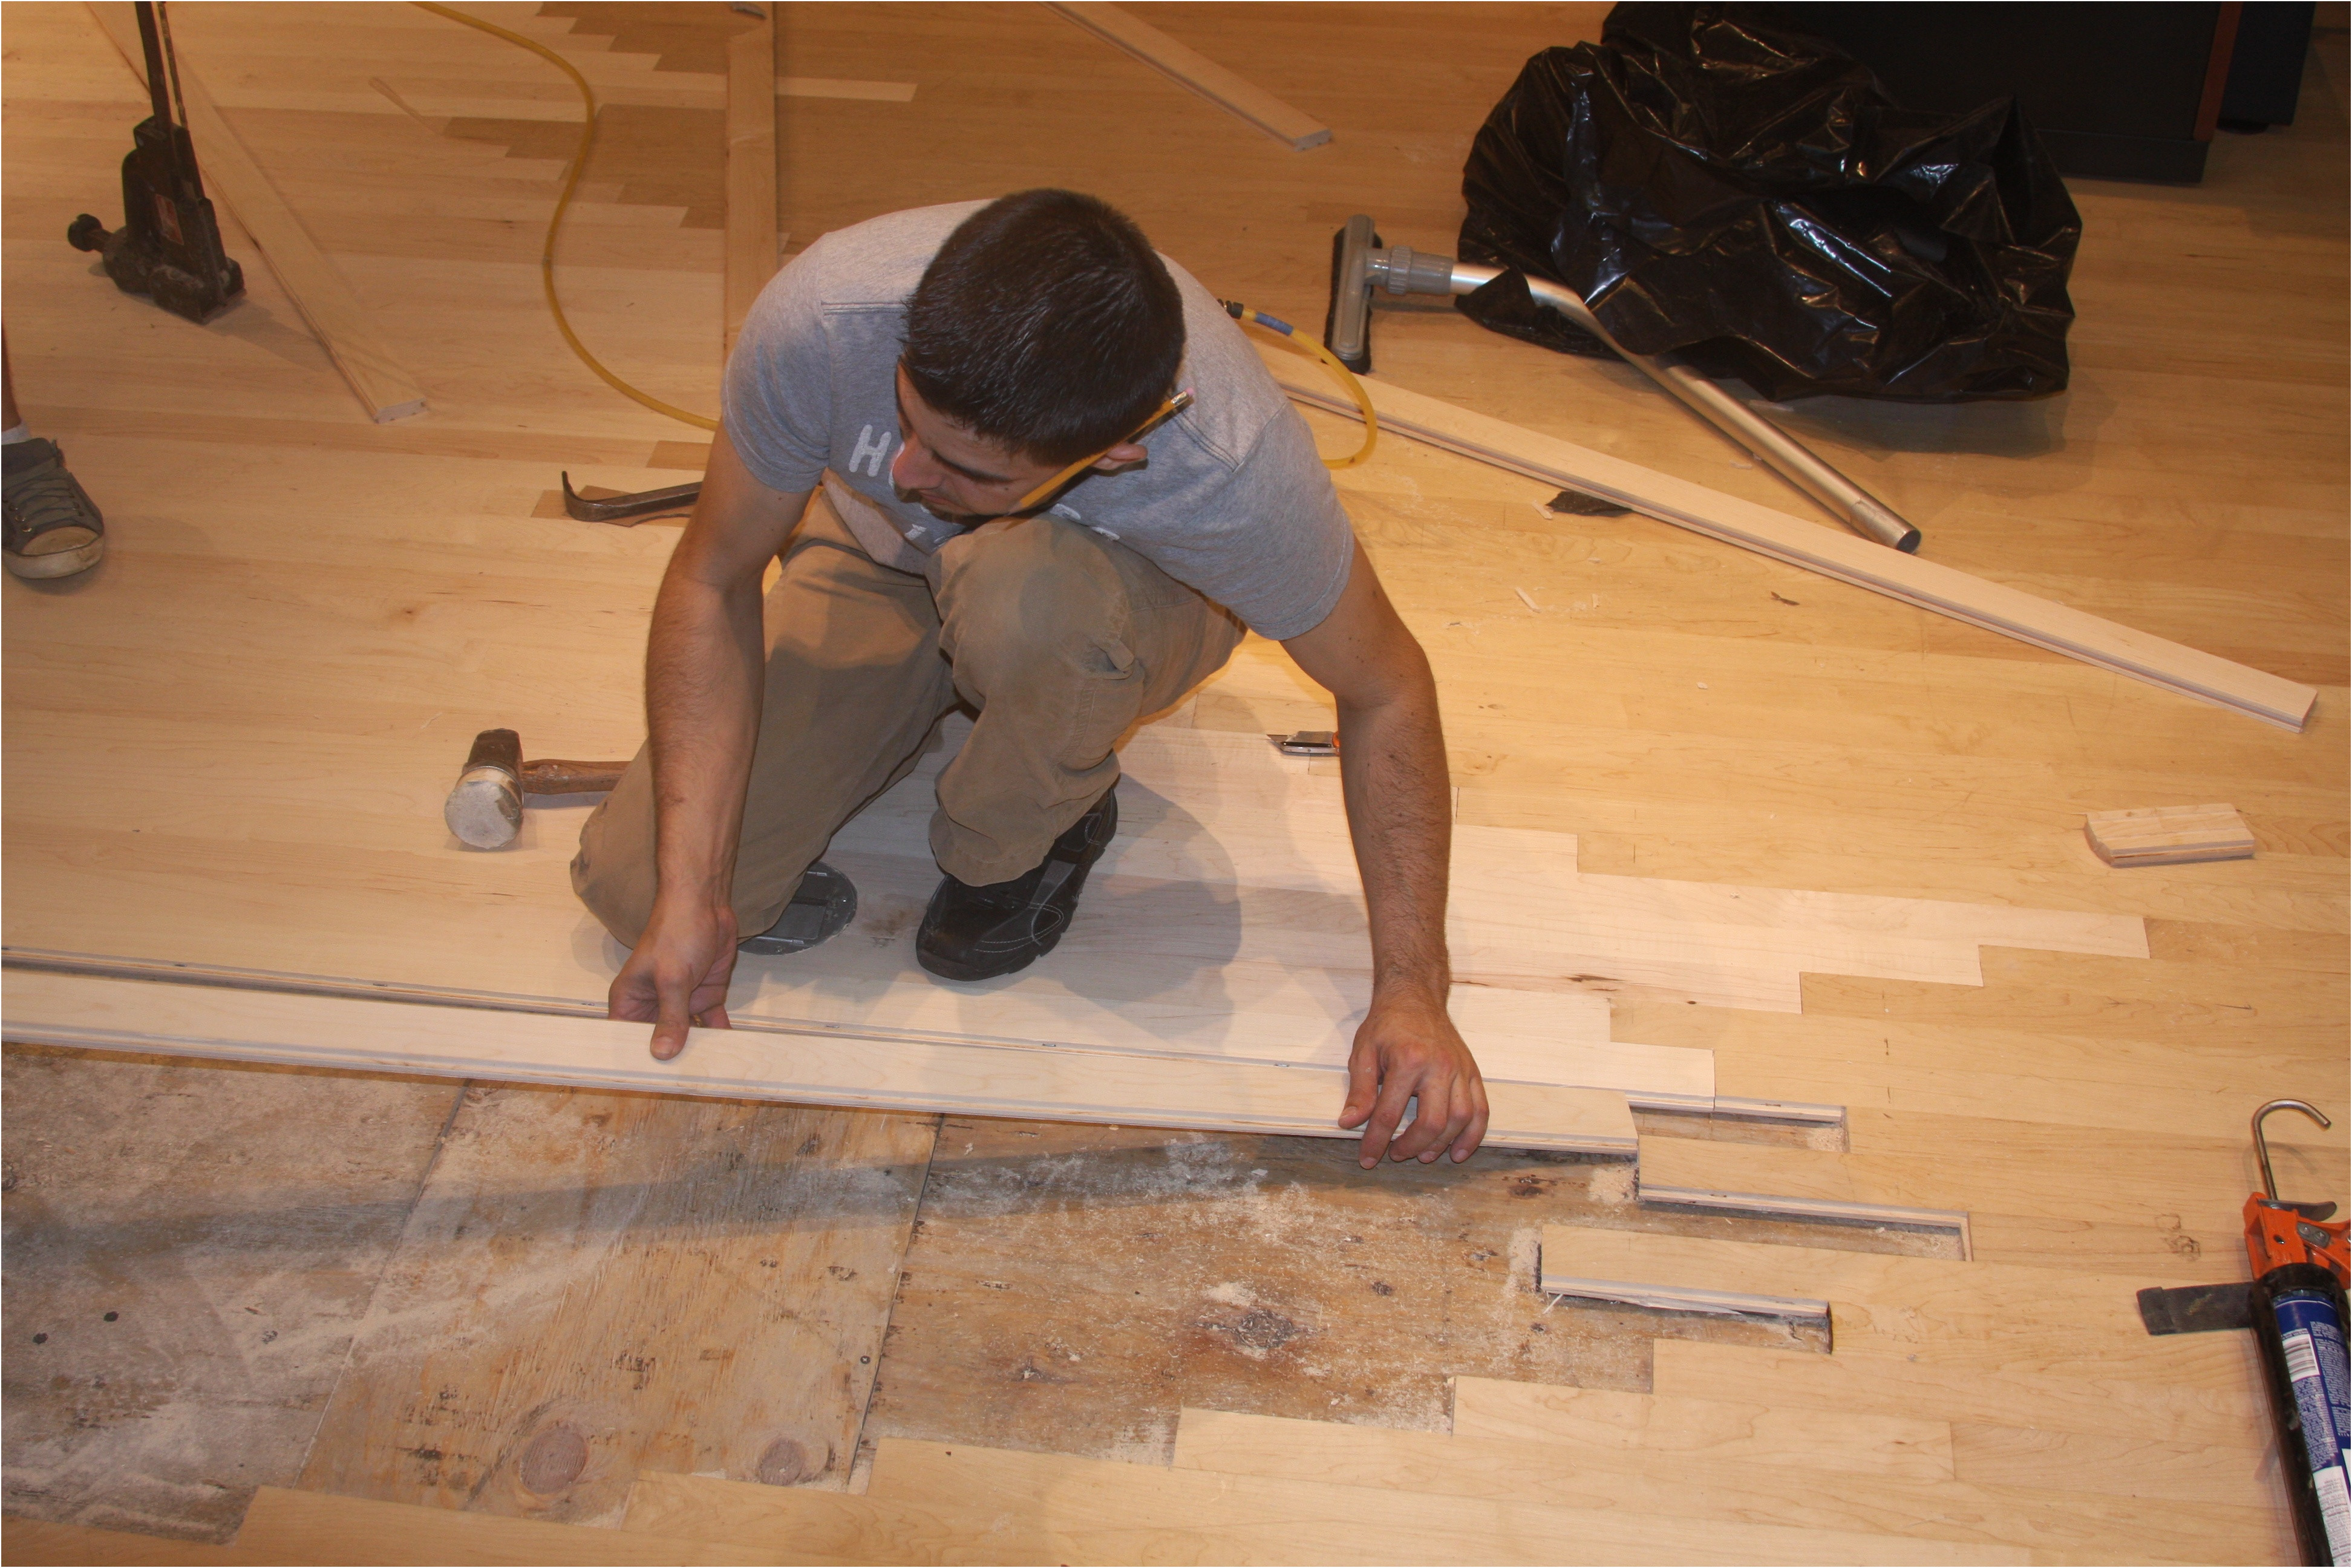 how to install engineered hardwood flooring on concrete slab of best way to install engineered wood flooring over concrete how to regarding best way to install engineered wood flooring over concrete how to lay hardwood flooring a concrete